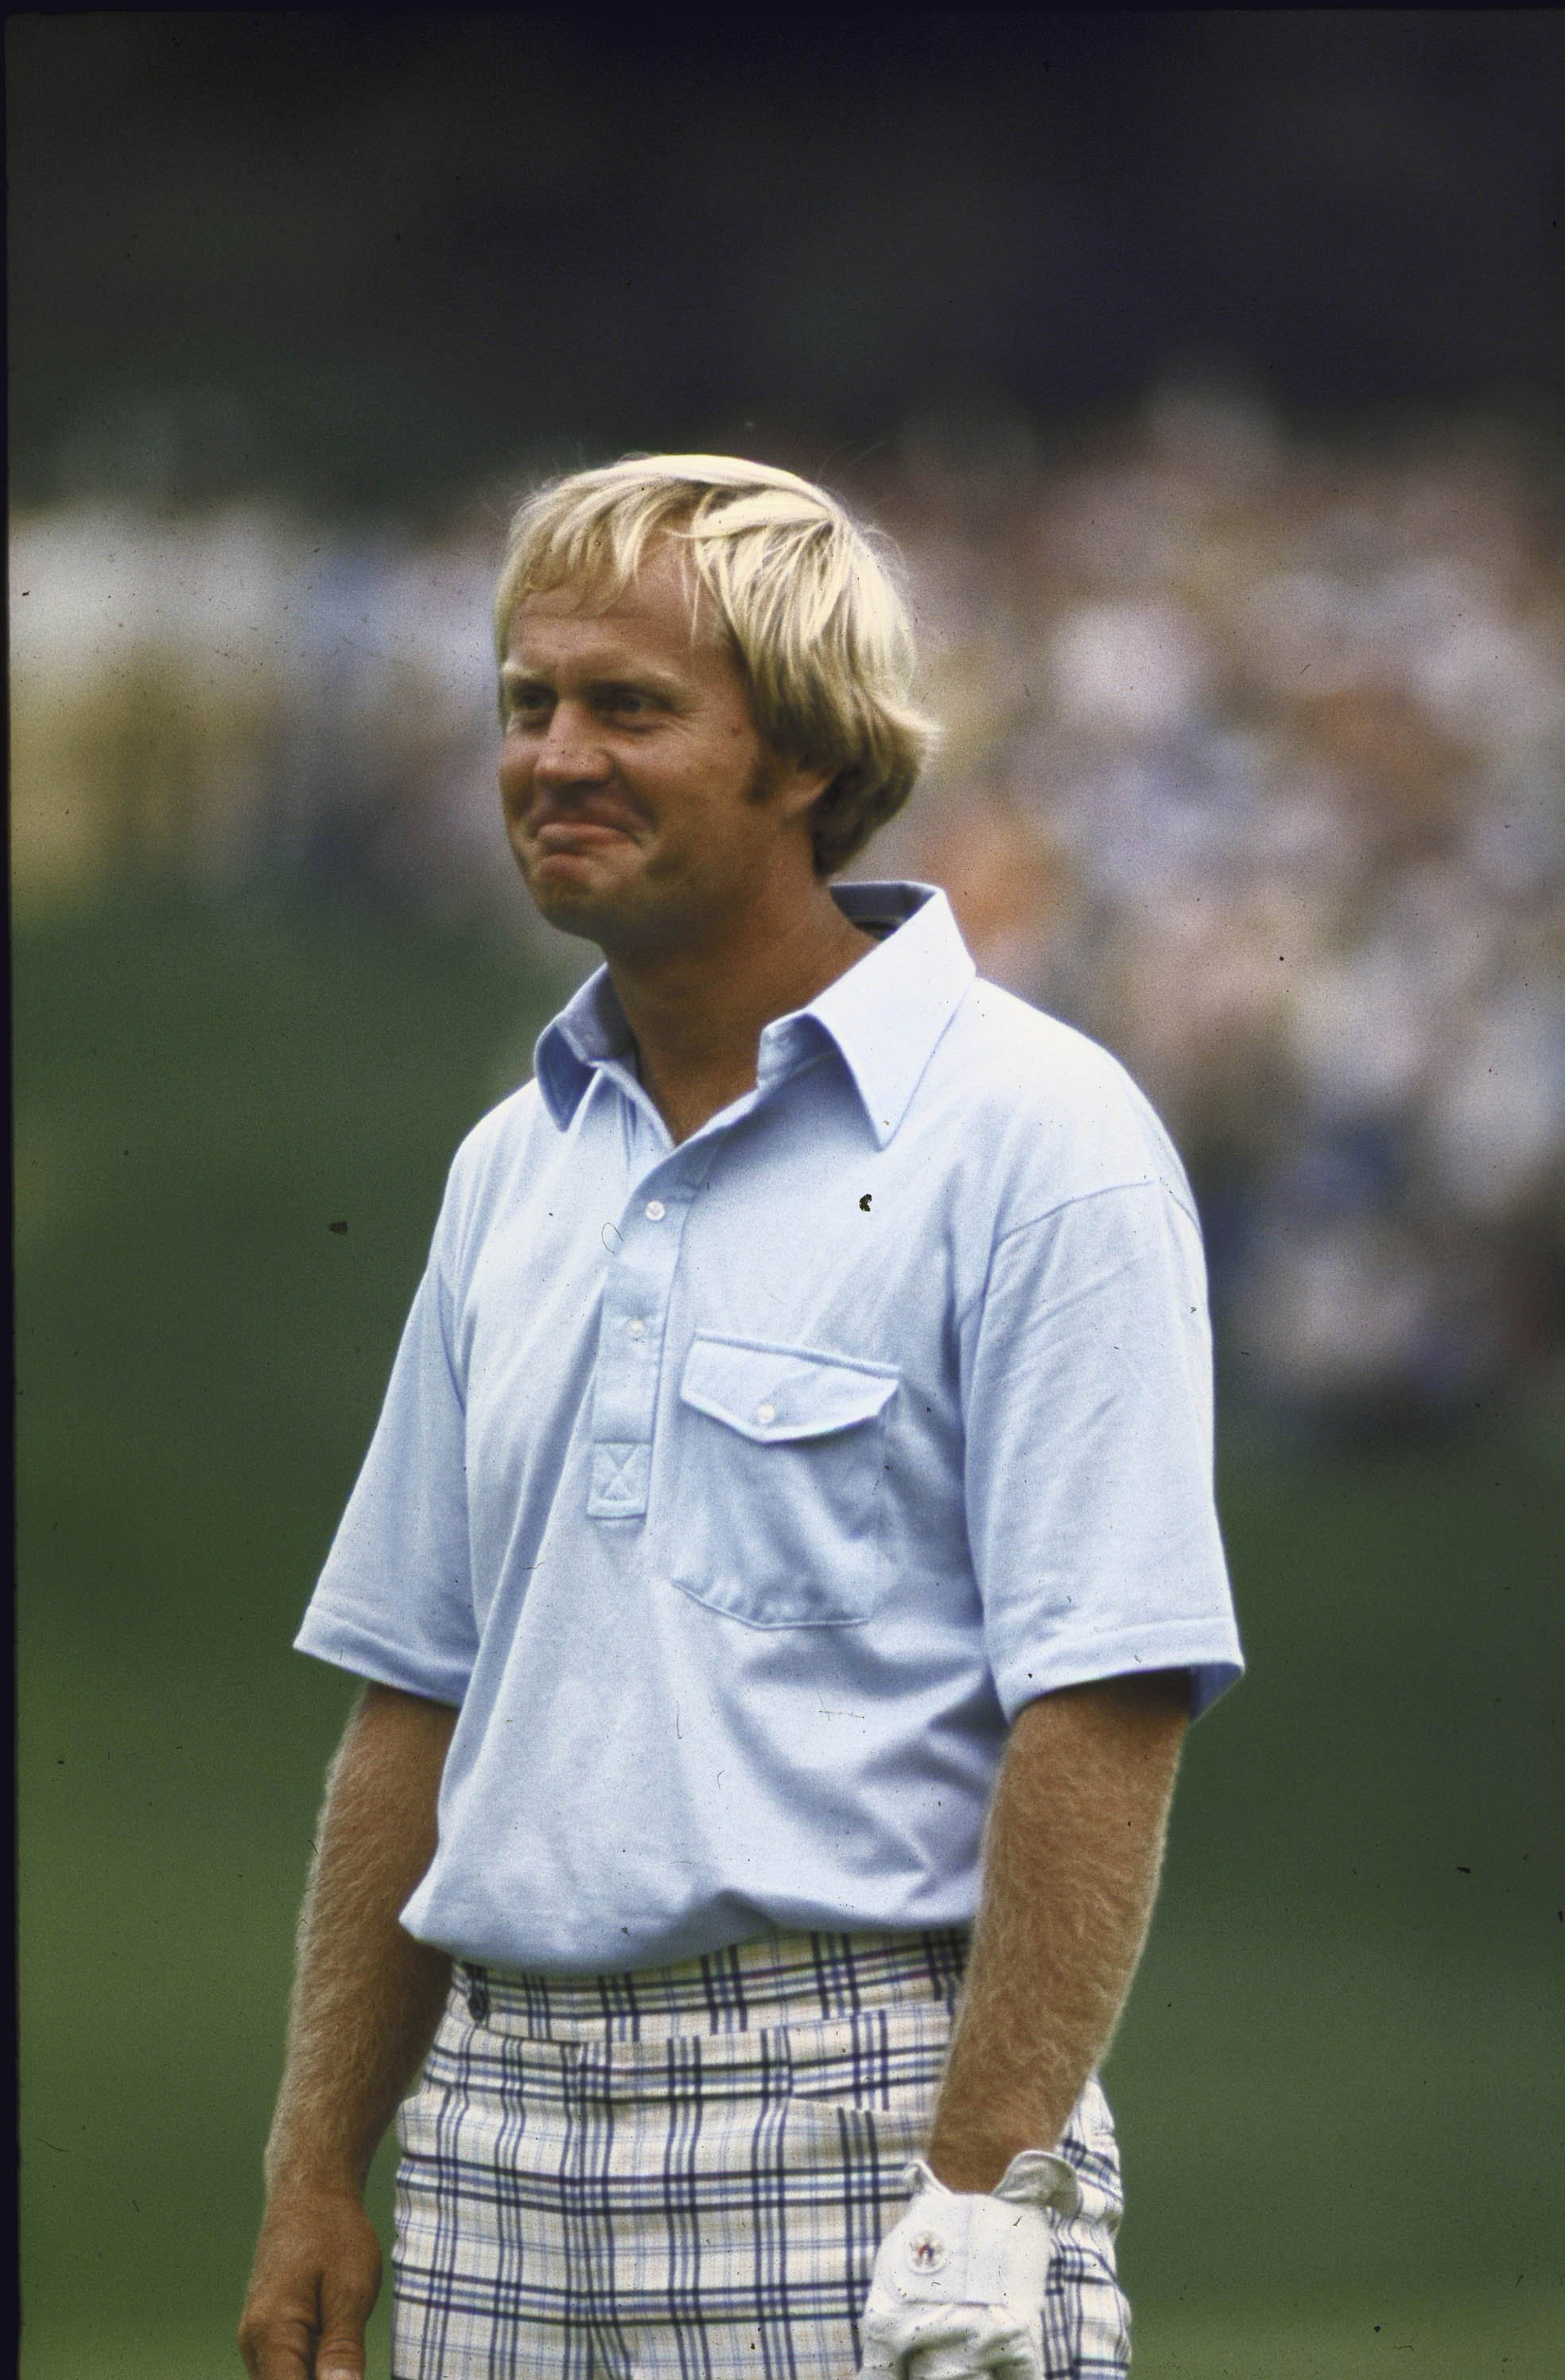 Jack Nicklaus at the 1975 PGA Championship at Firestone Country Club in Akron, Ohio.